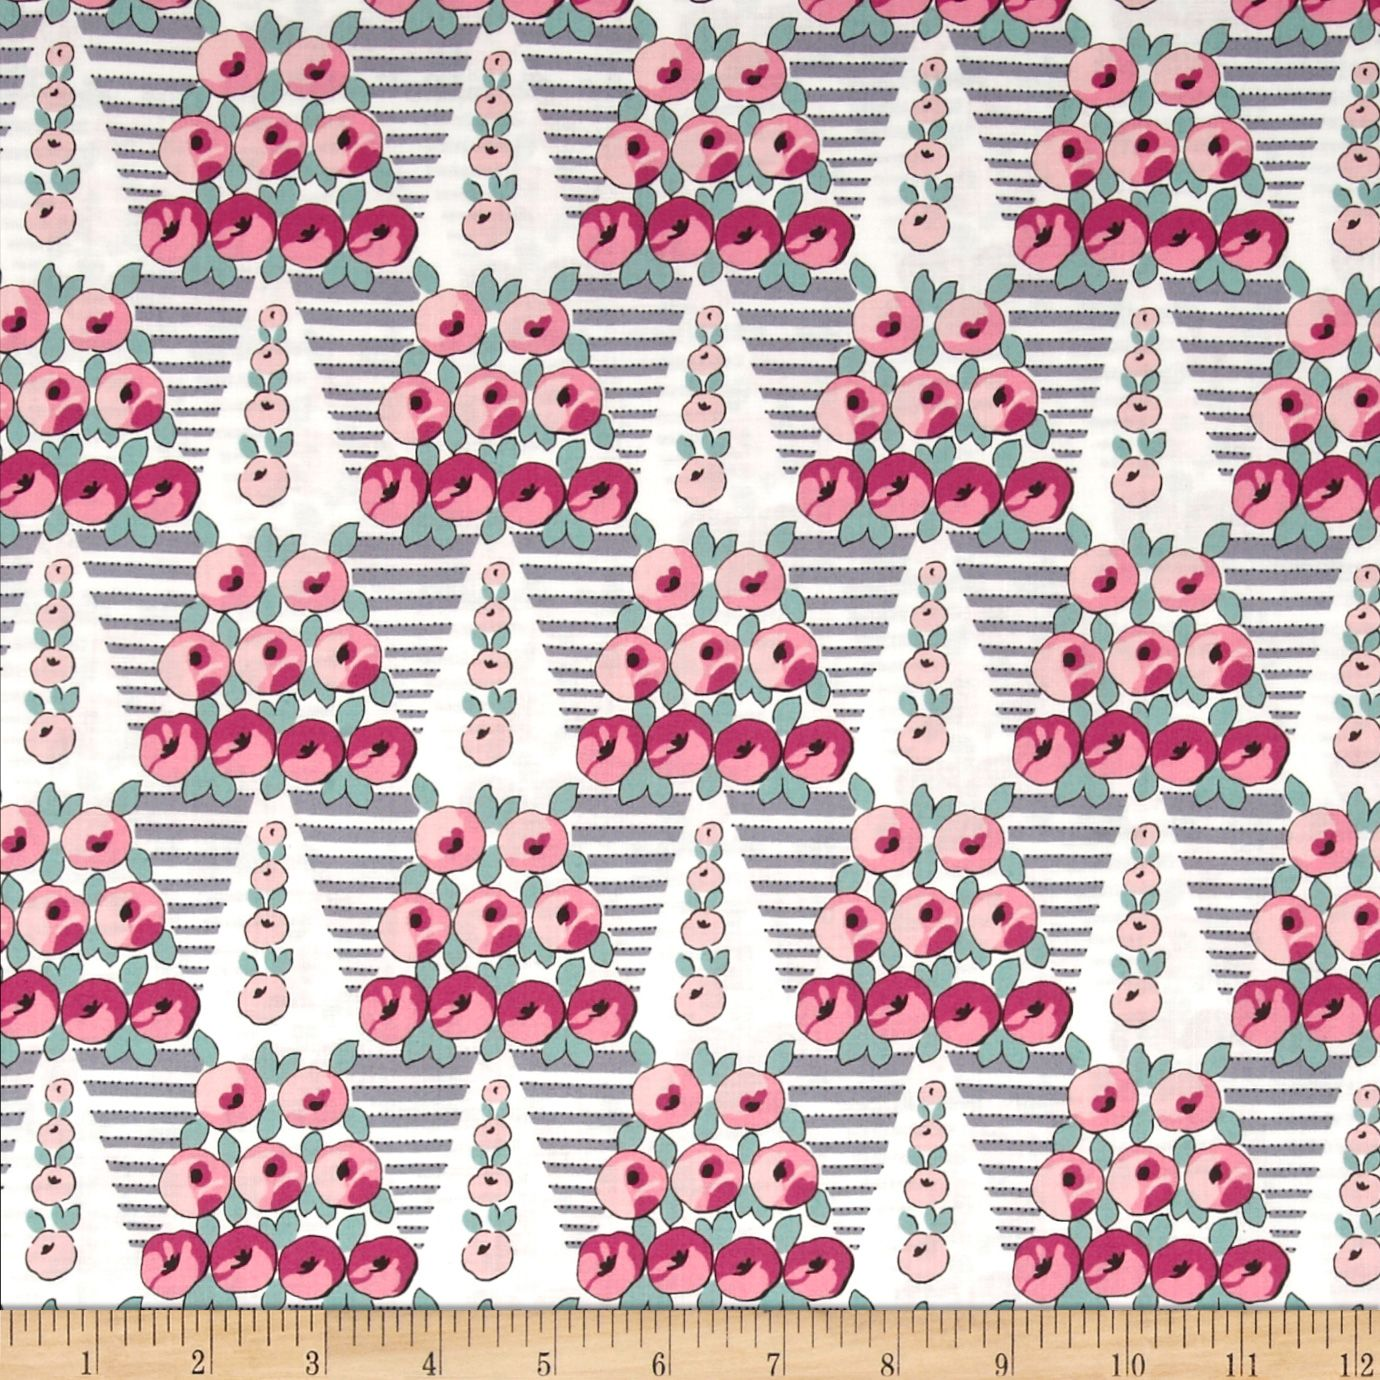 Downton Abbey II Topiary Rose Pink Fabric